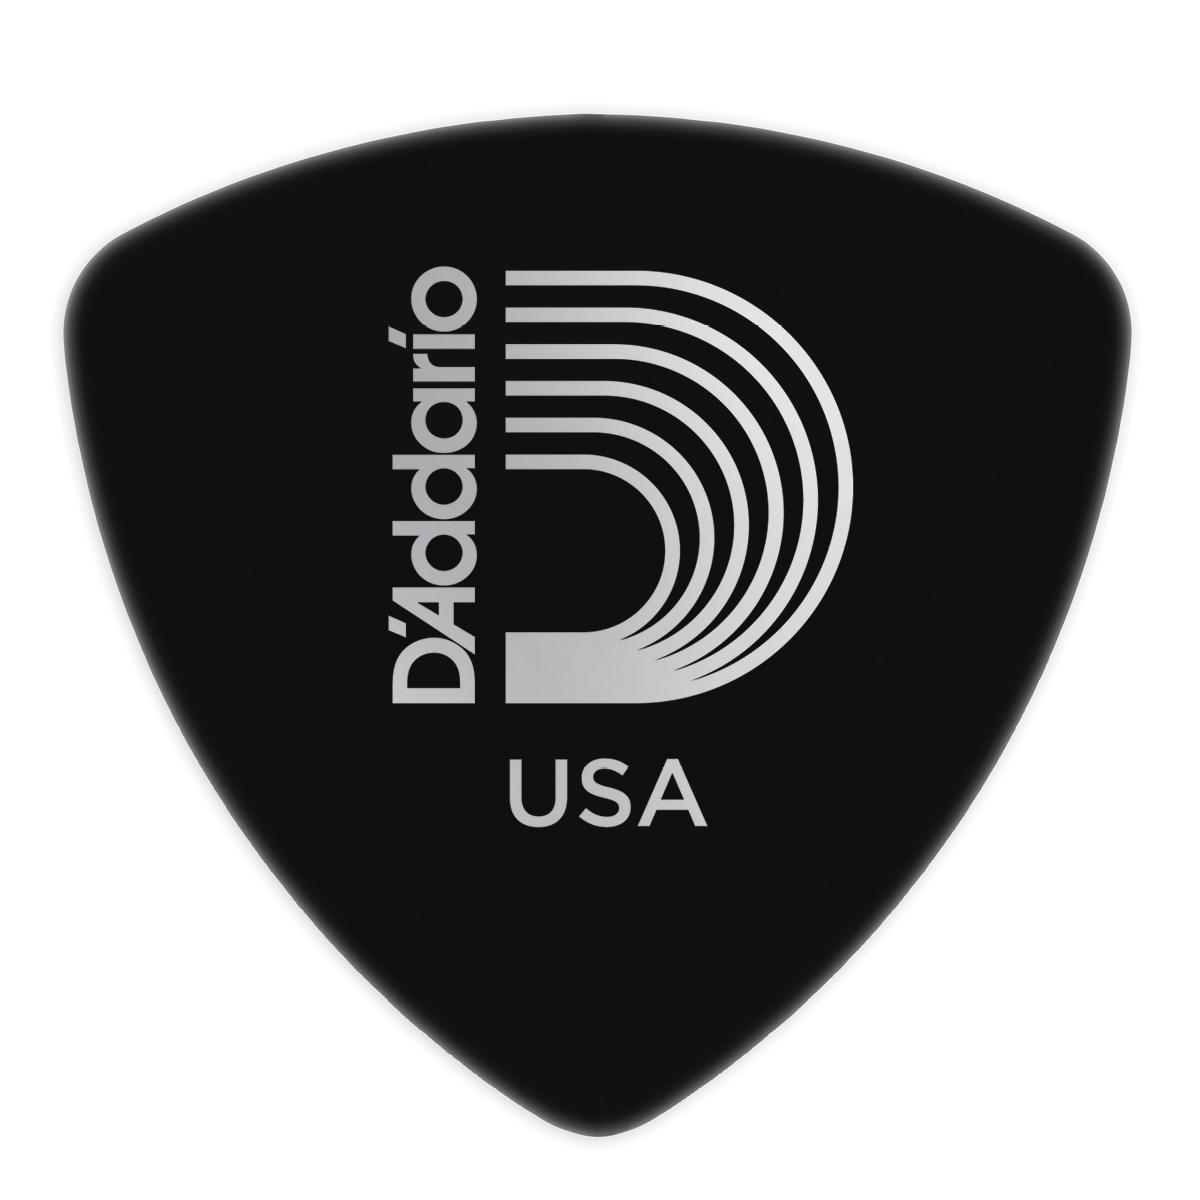 Planet Waves Black Celluloid Guitar Picks, 10 pack, Heavy, Wide Shape by